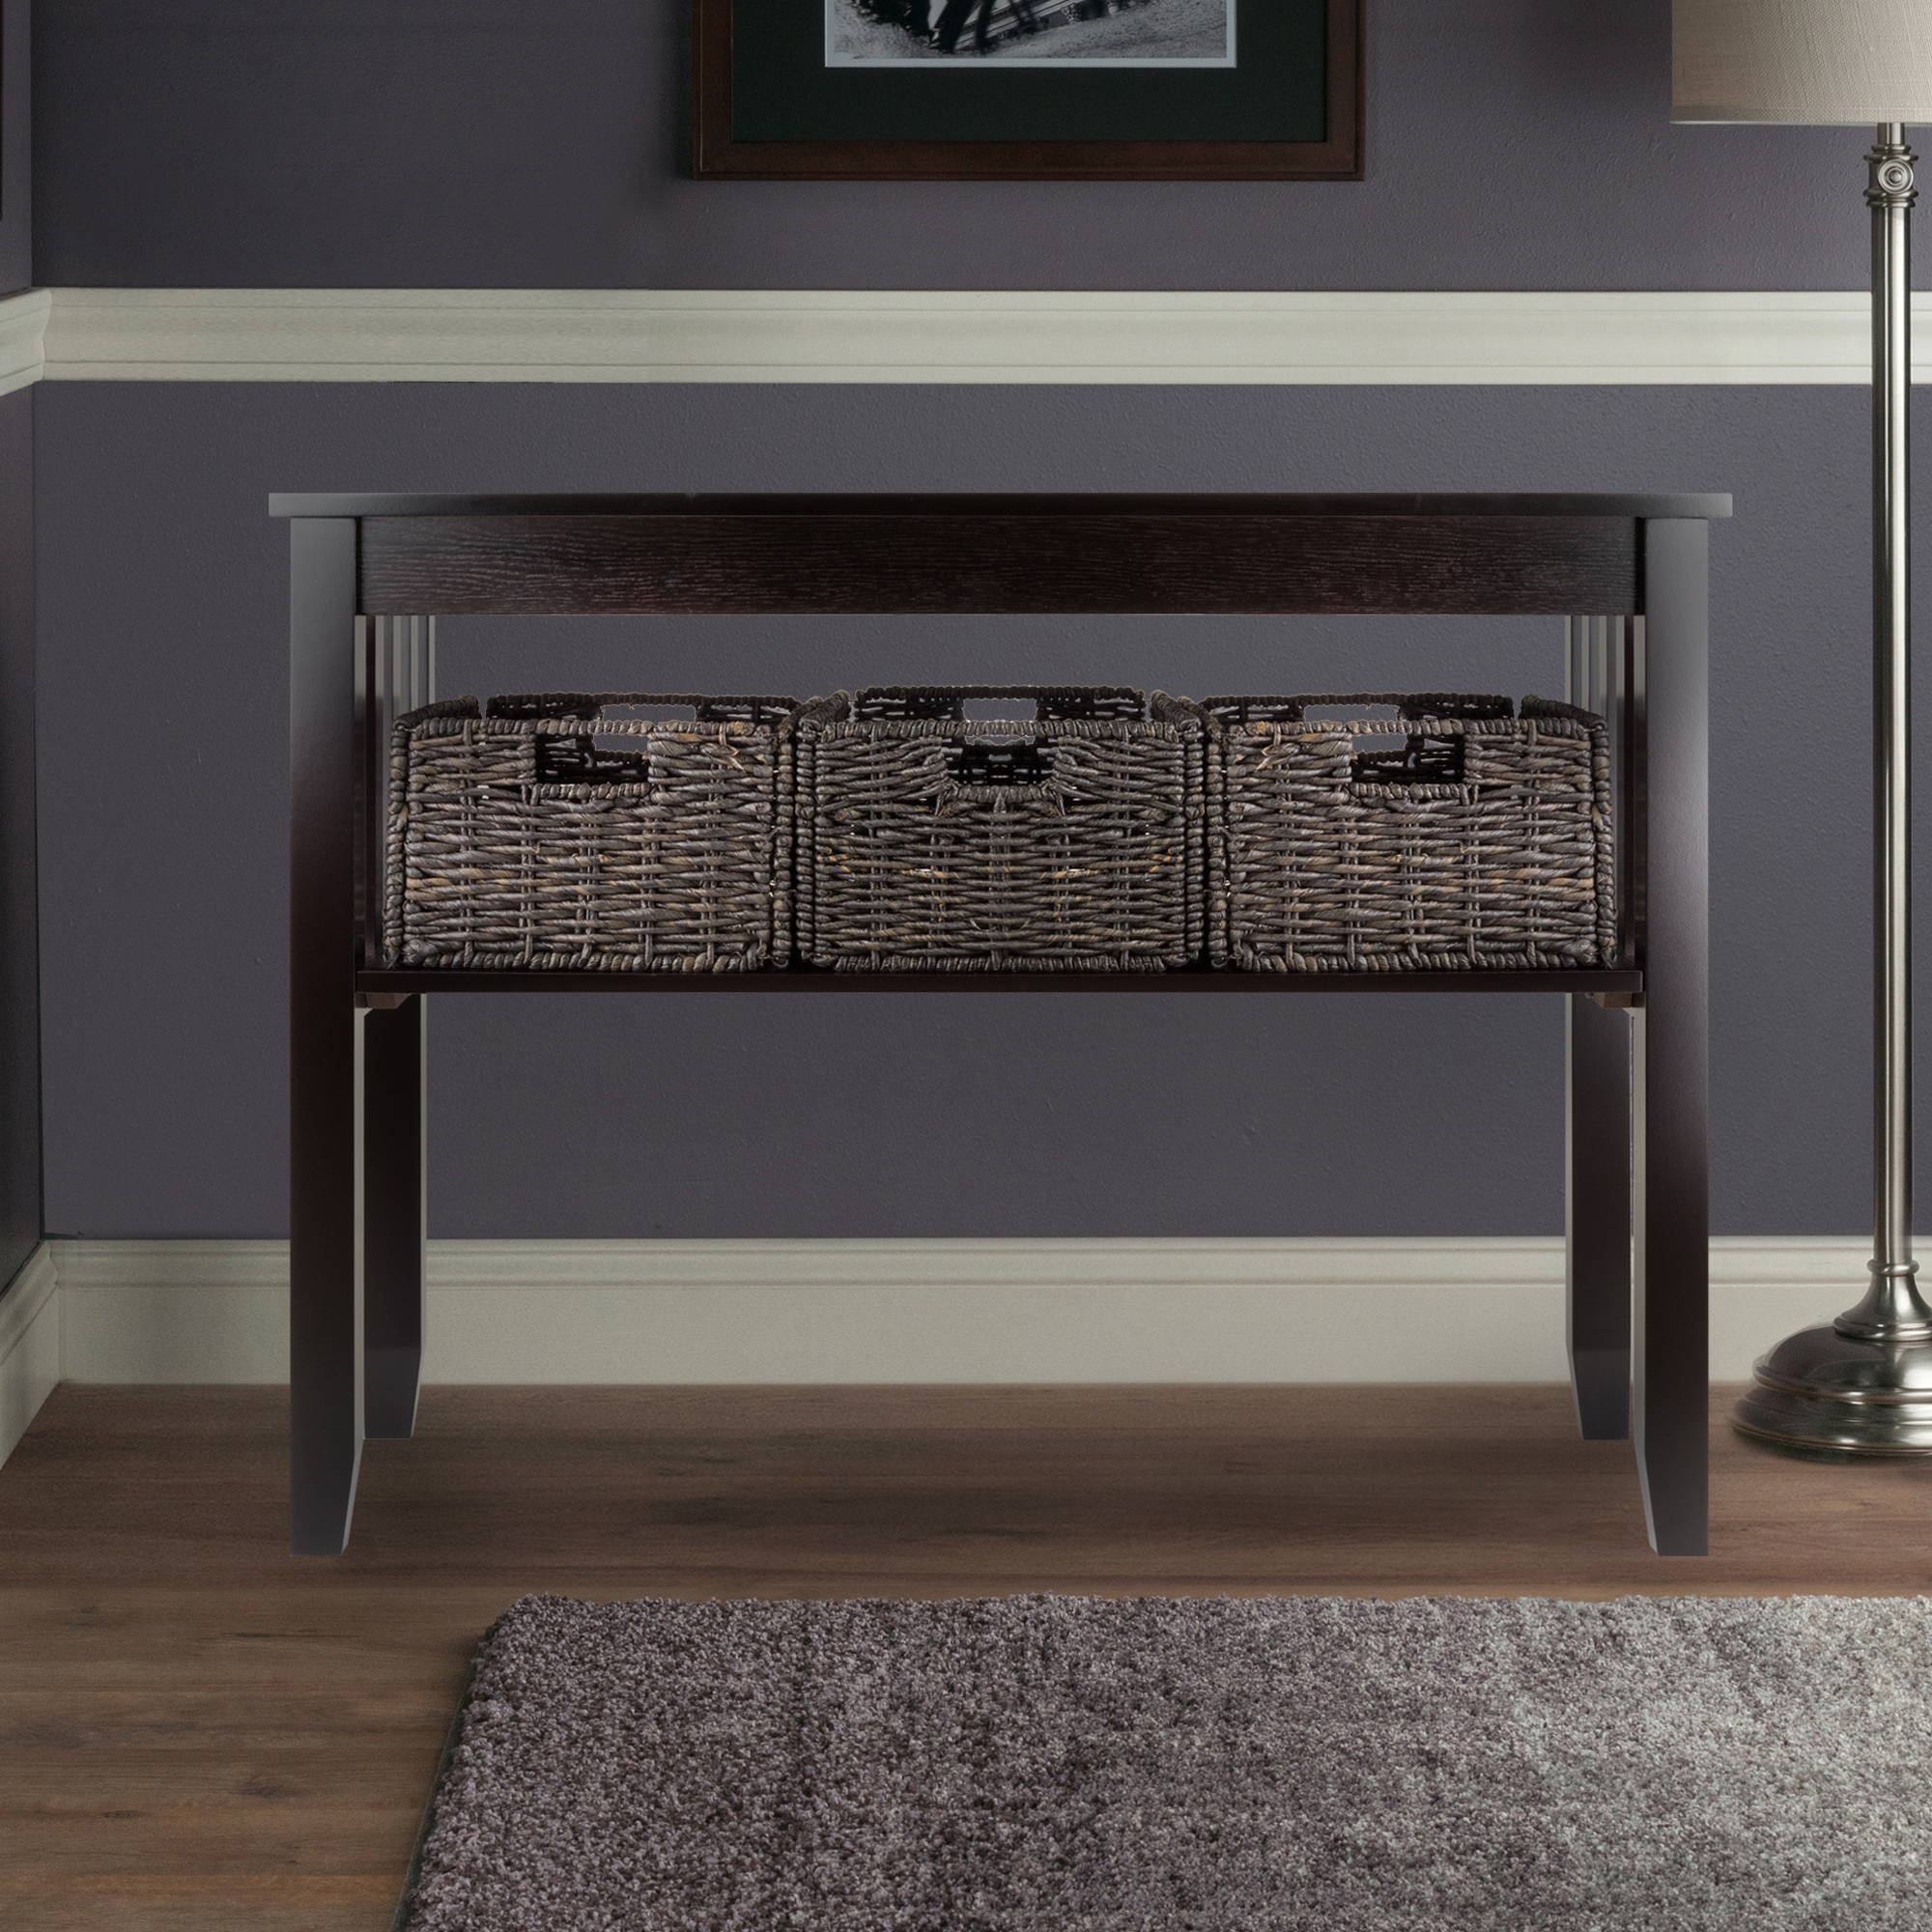 Winsome Wood Morris Console Table with 3 Storage Baskets, Espresso Finish